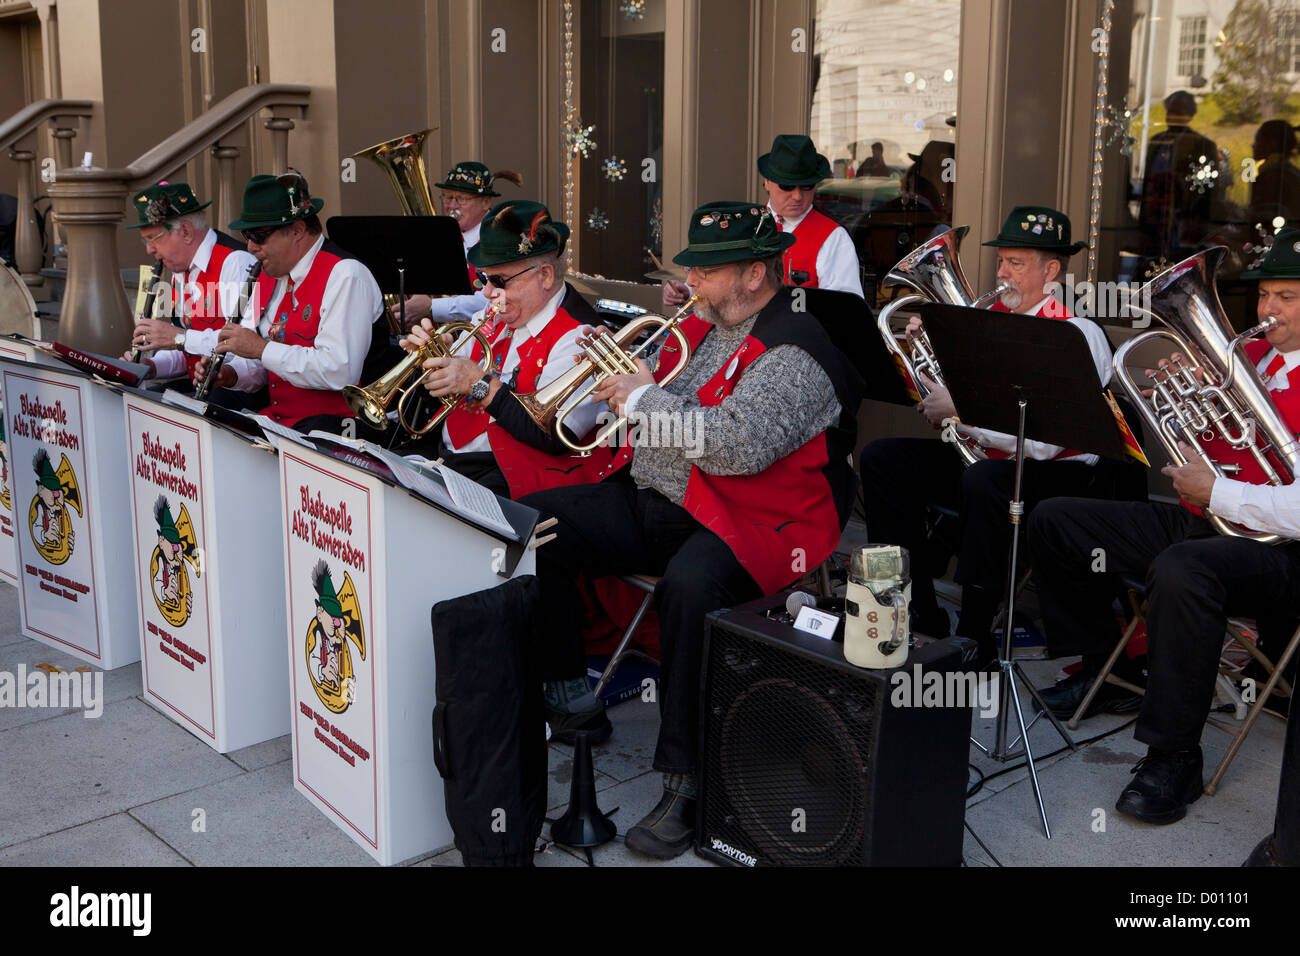 Traditional German music band performing outdoors - Stock Image